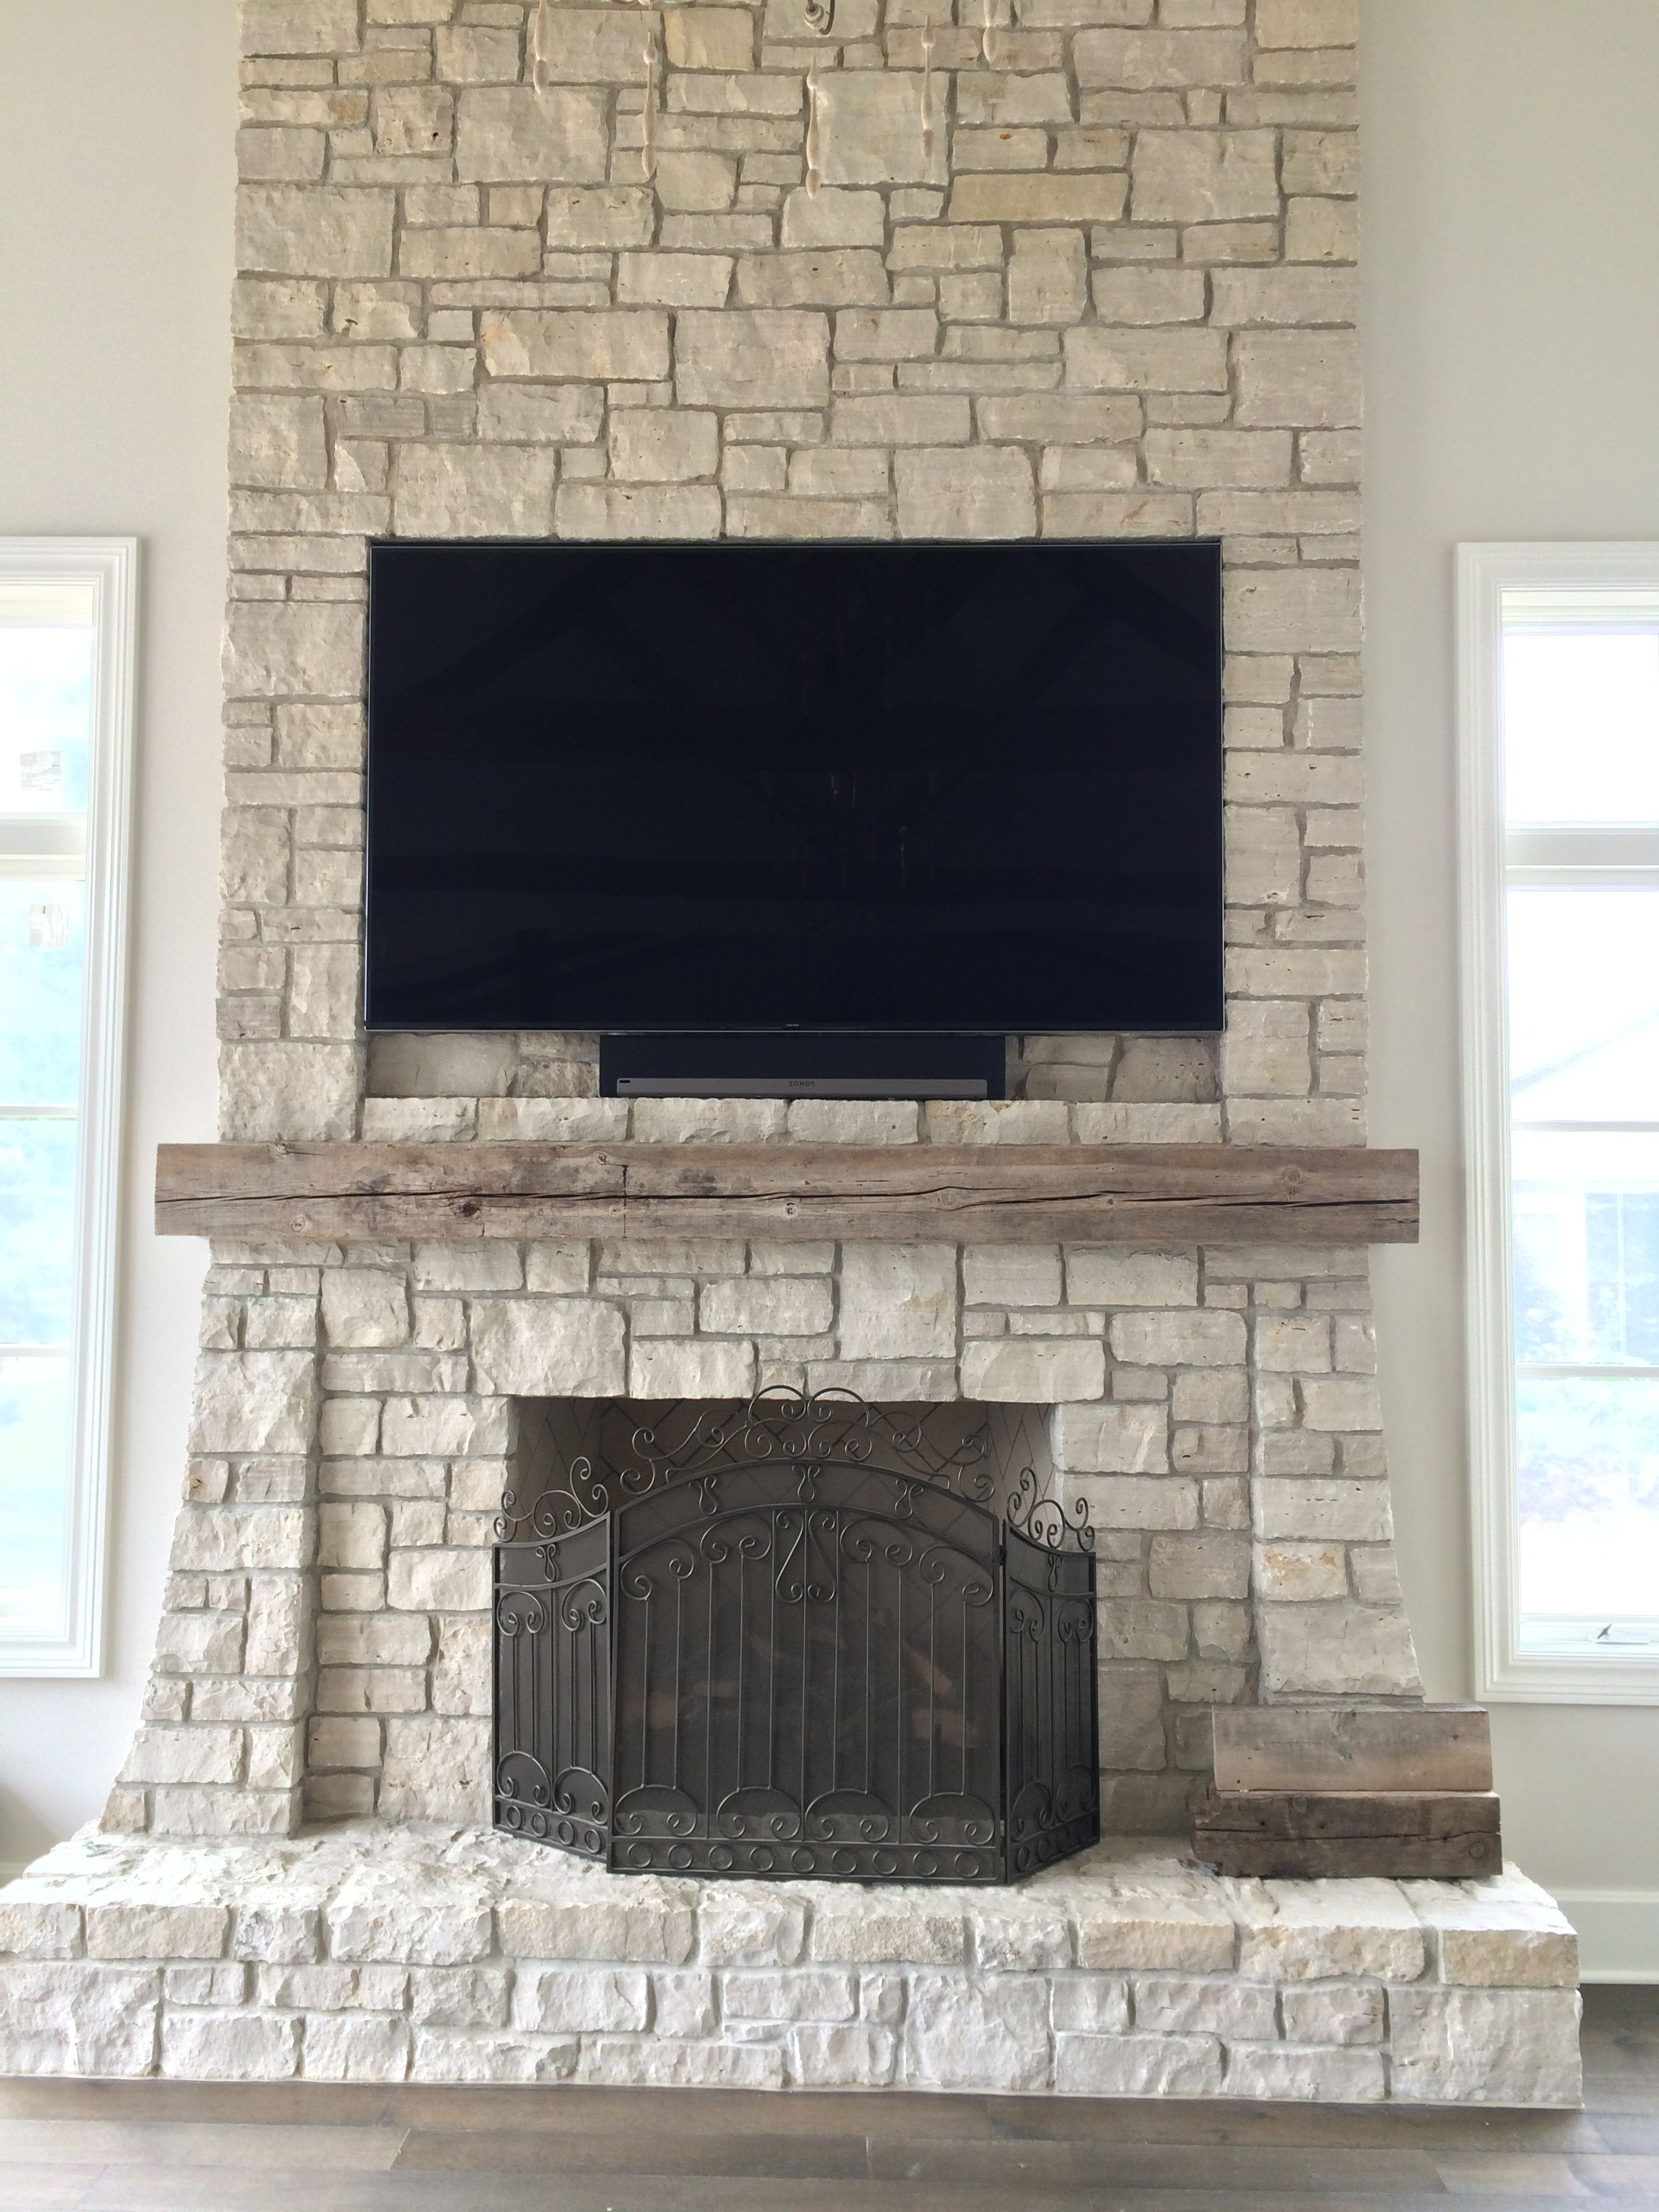 Flat Panel Tv Mounted And Inset Into Stone Facade Over A Fireplace With Sonos Playbar Seamlessly Beneath